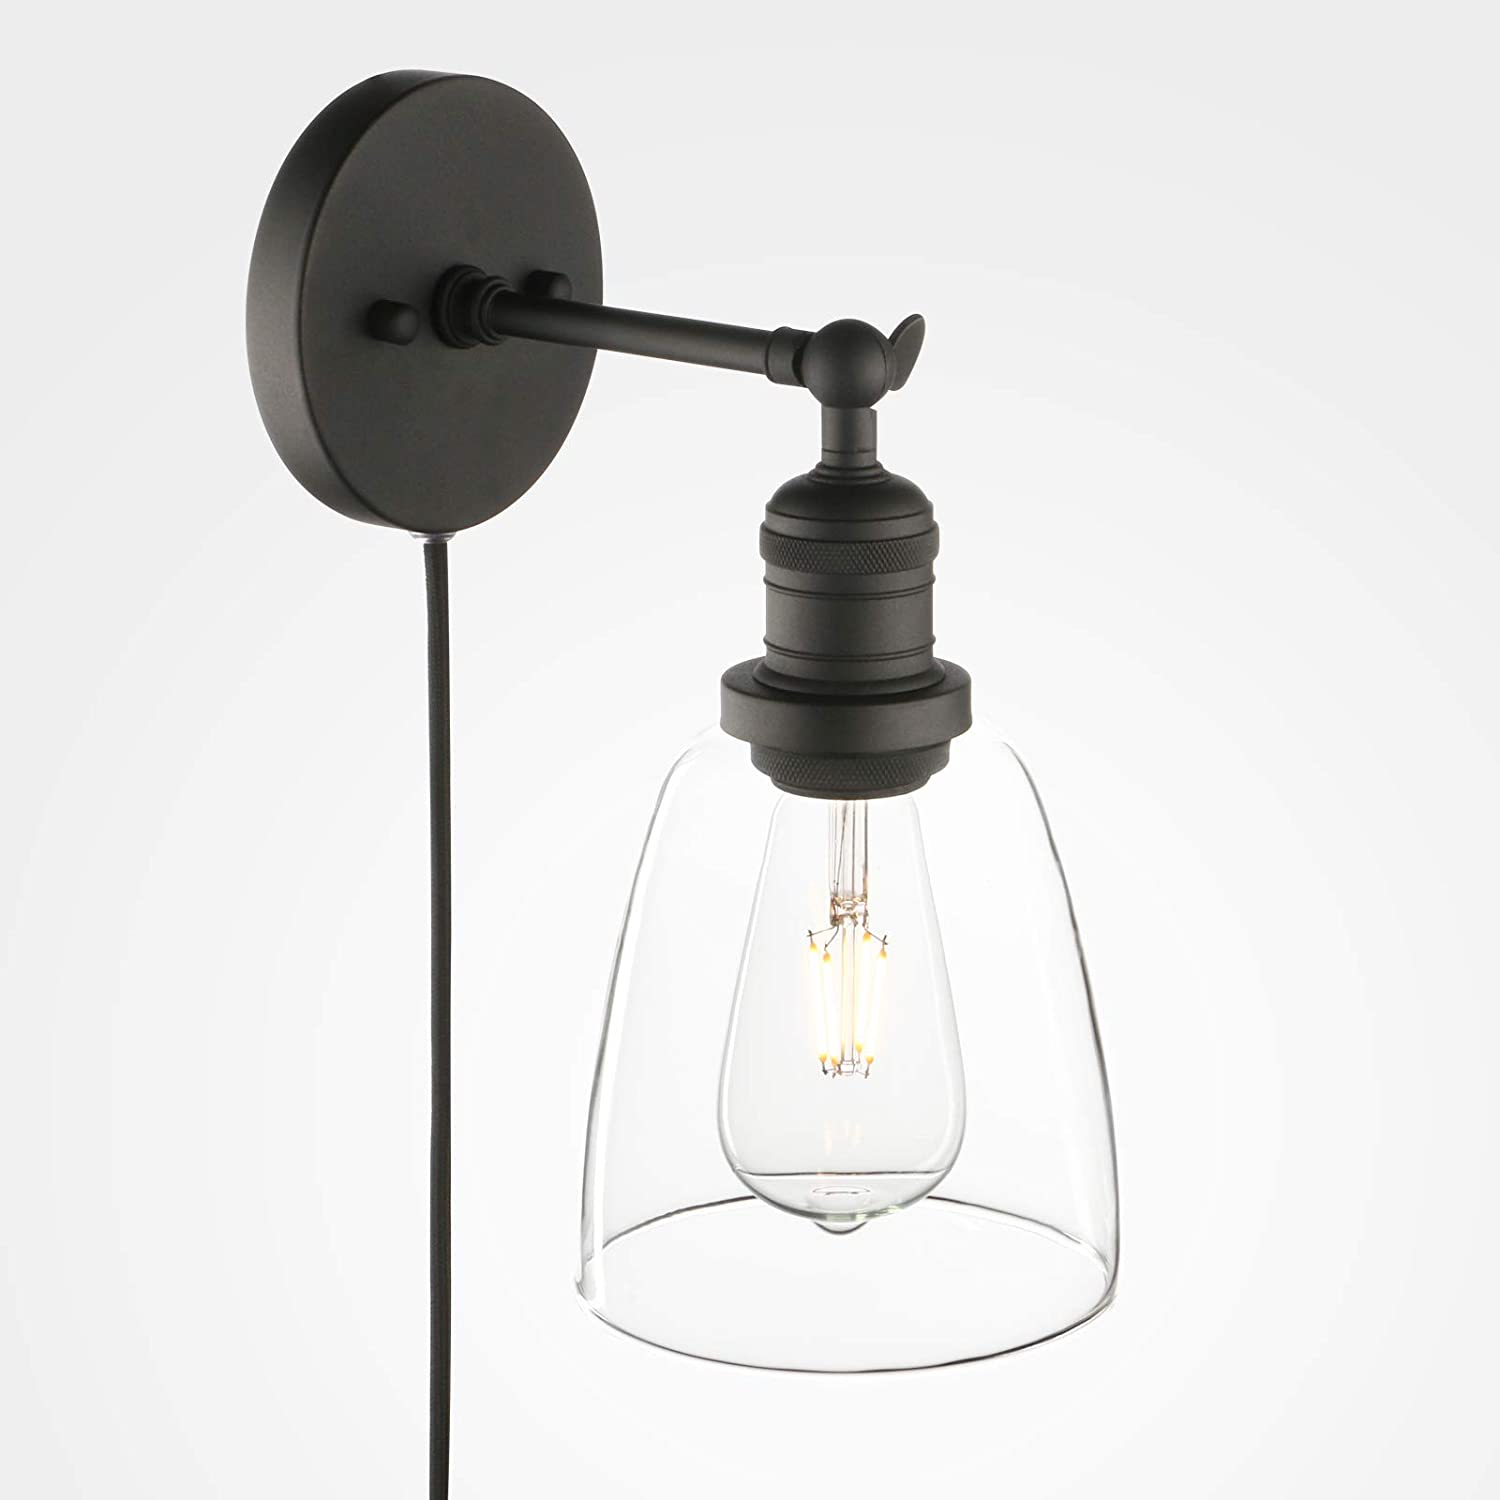 Phansthy Bathroom Vanity Light Matte Black Plug In Wall Sconce With 5 5 Inch Clear Glass Light Shade Amazon Com